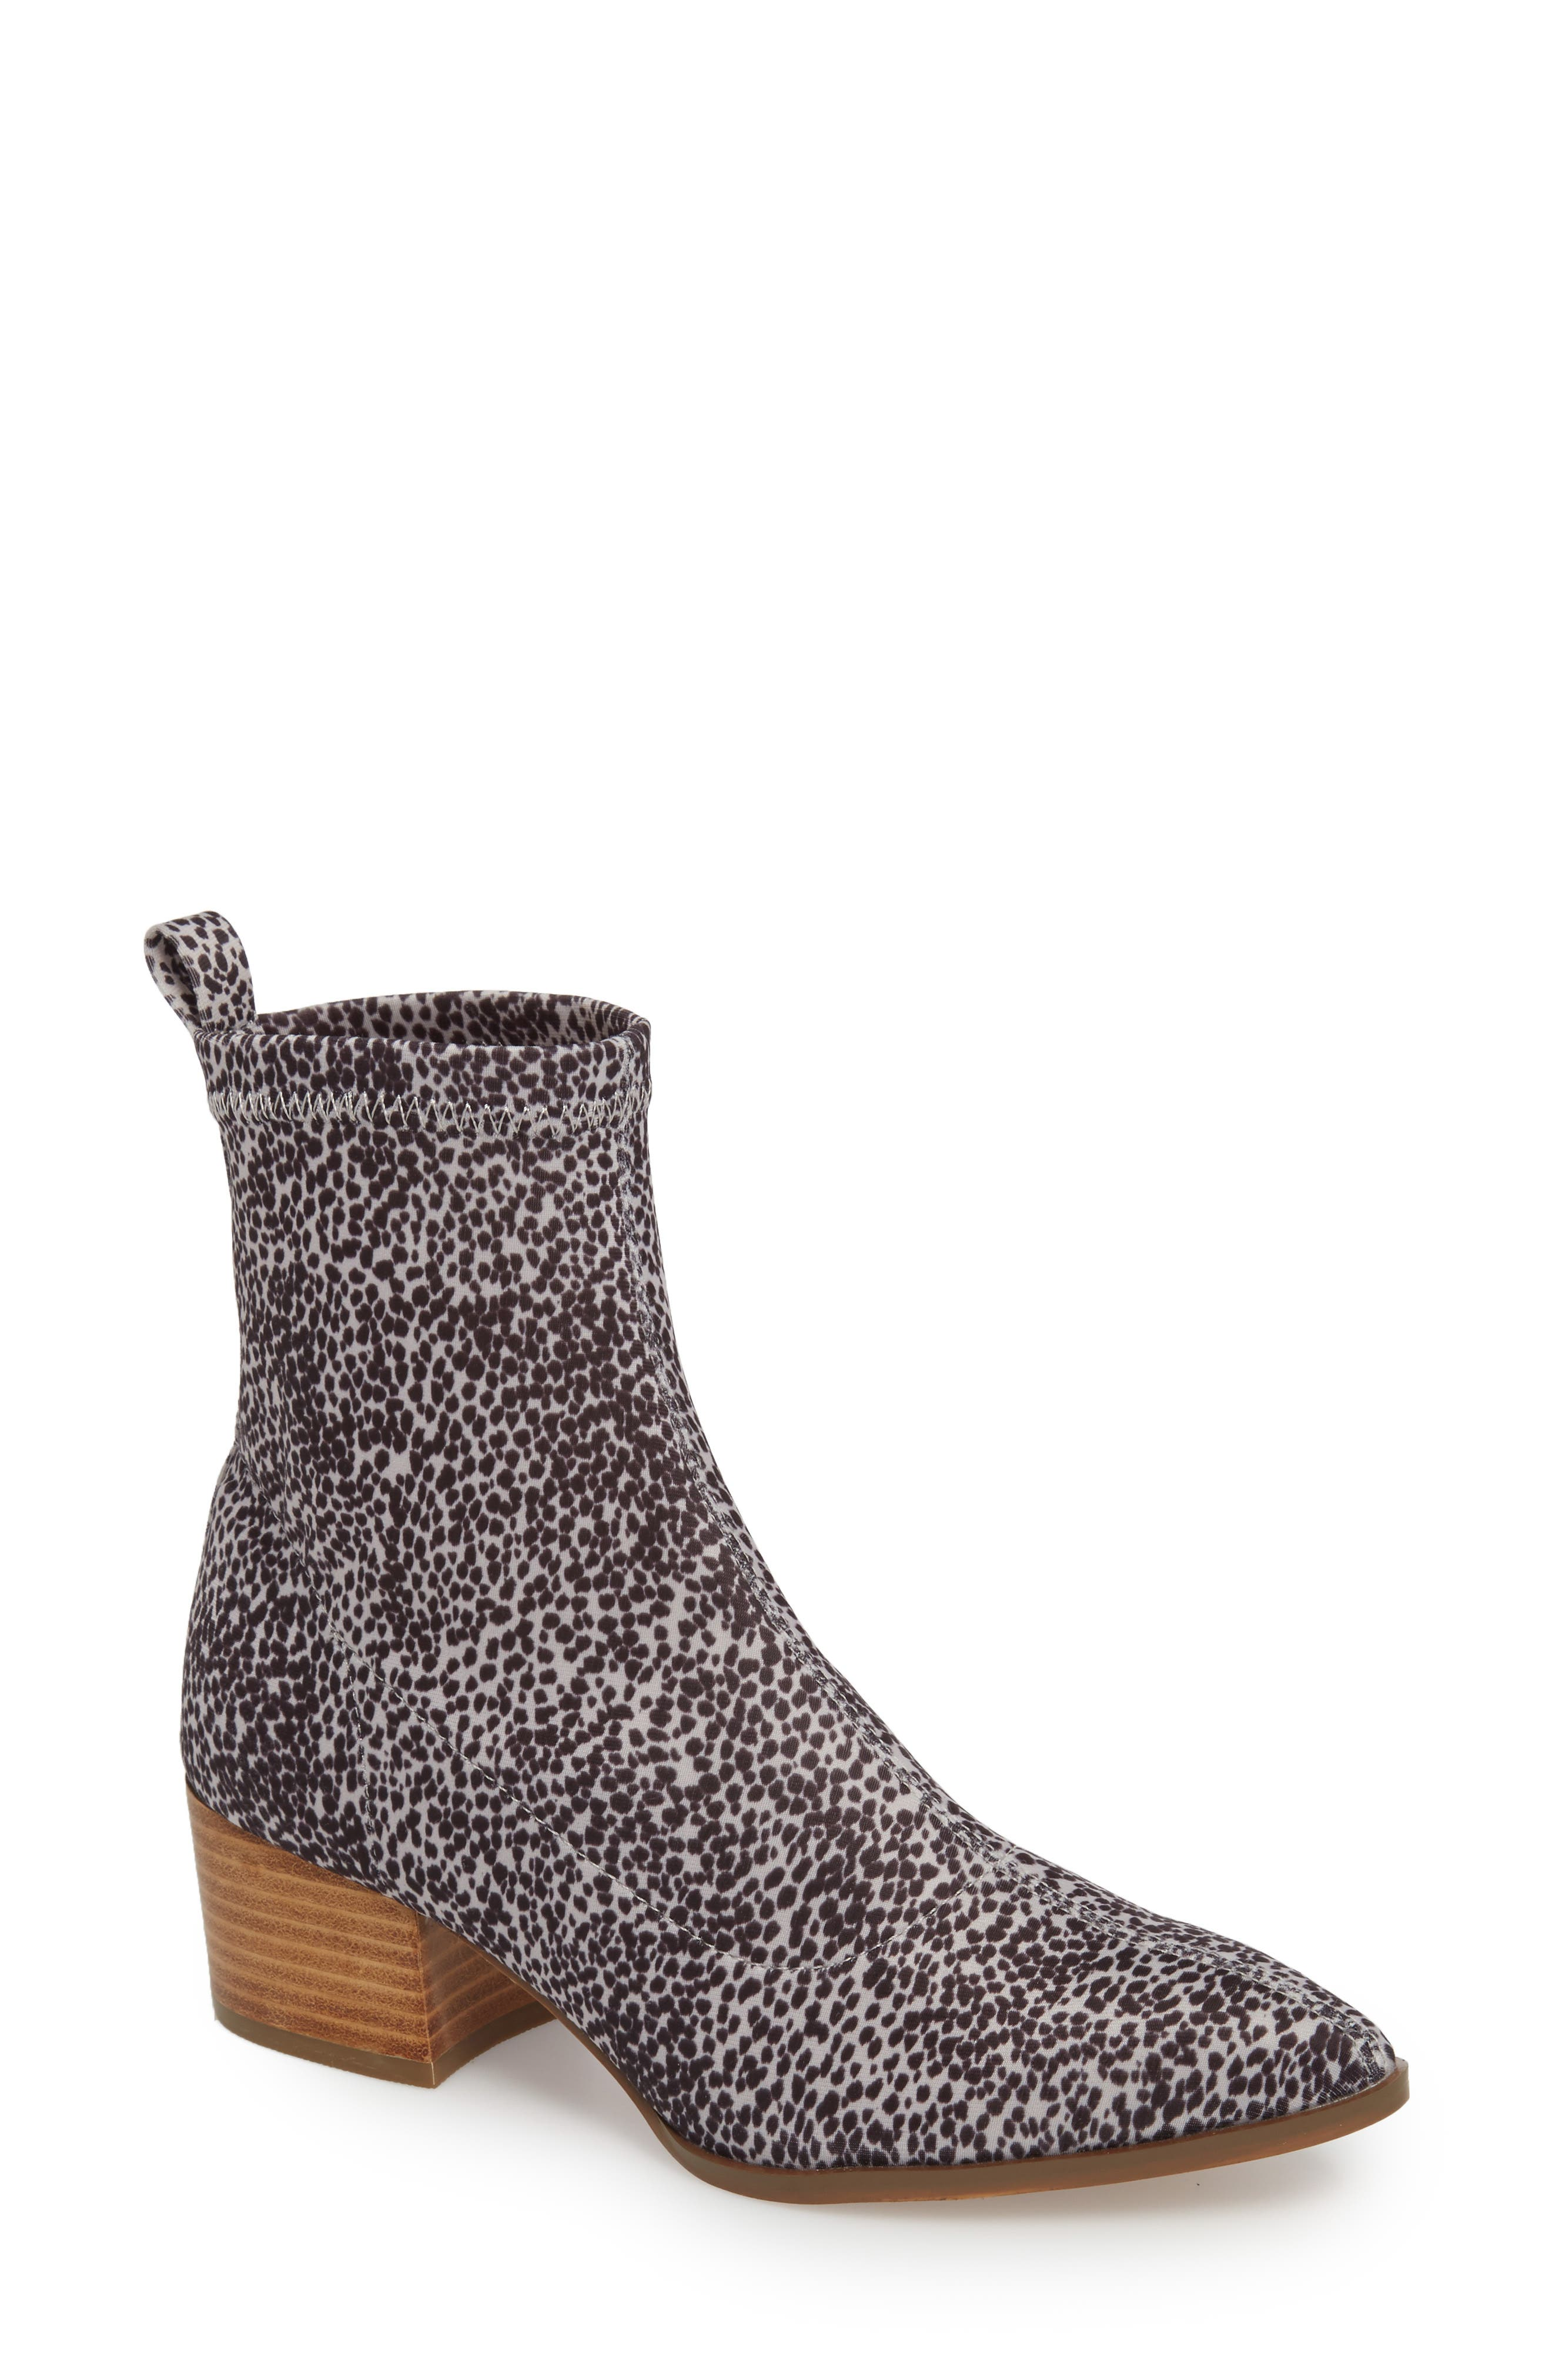 Amuse Society x Matisse Liliana Sock Bootie,                             Main thumbnail 1, color,                             111